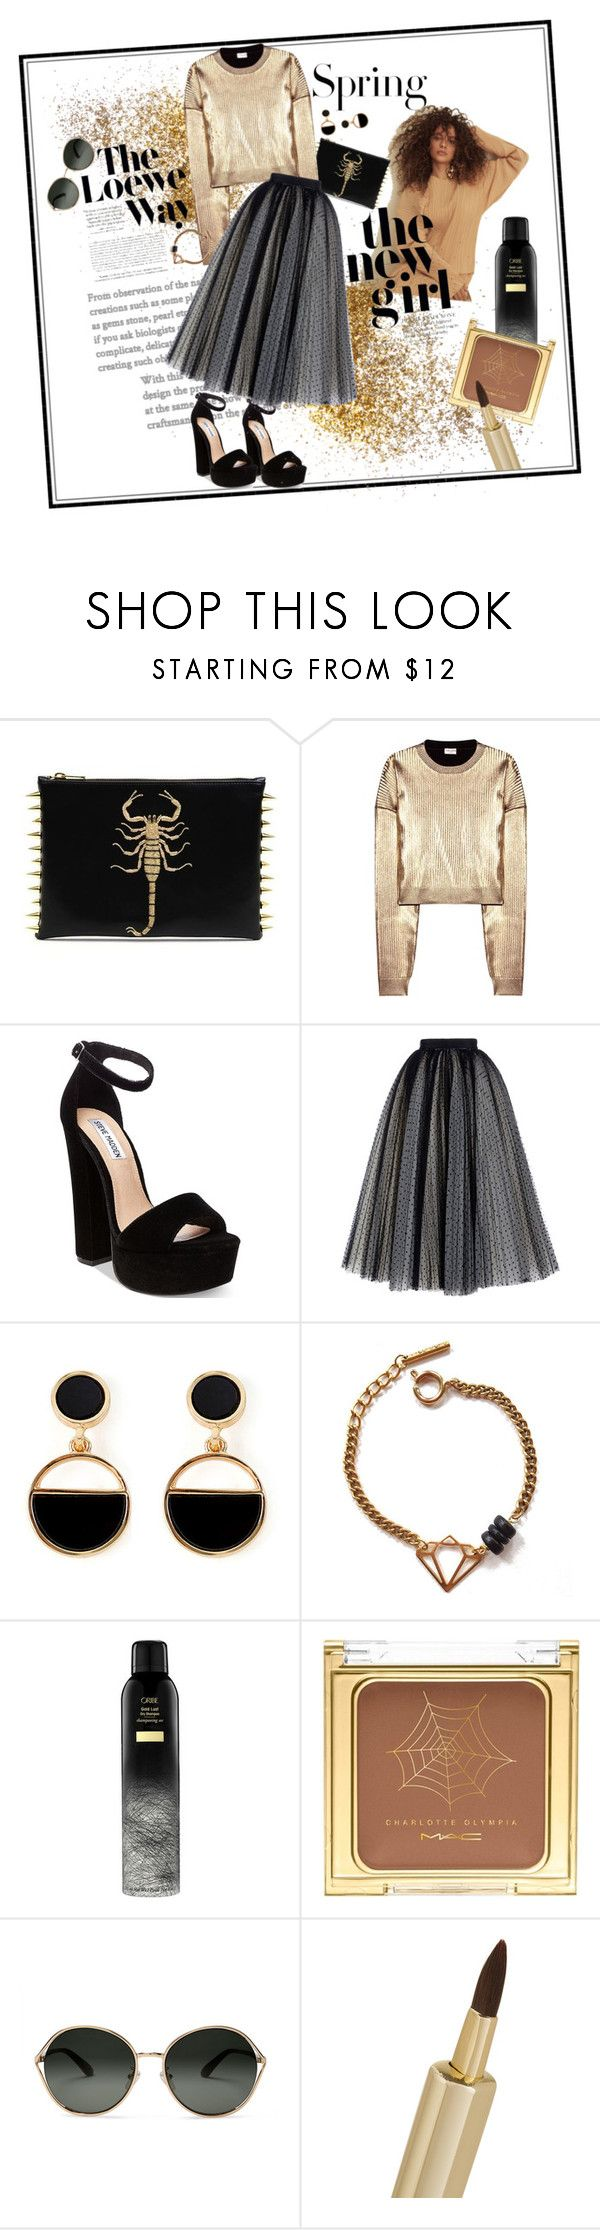 """Gold brass"" by britt-catlynne-weatherall ❤ liked on Polyvore featuring H&M, Yves Saint Laurent, Steve Madden, Philosophy di Lorenzo Serafini, Warehouse, Tilly Doro, Loewe, MAC Cosmetics, TOMS and By Terry"